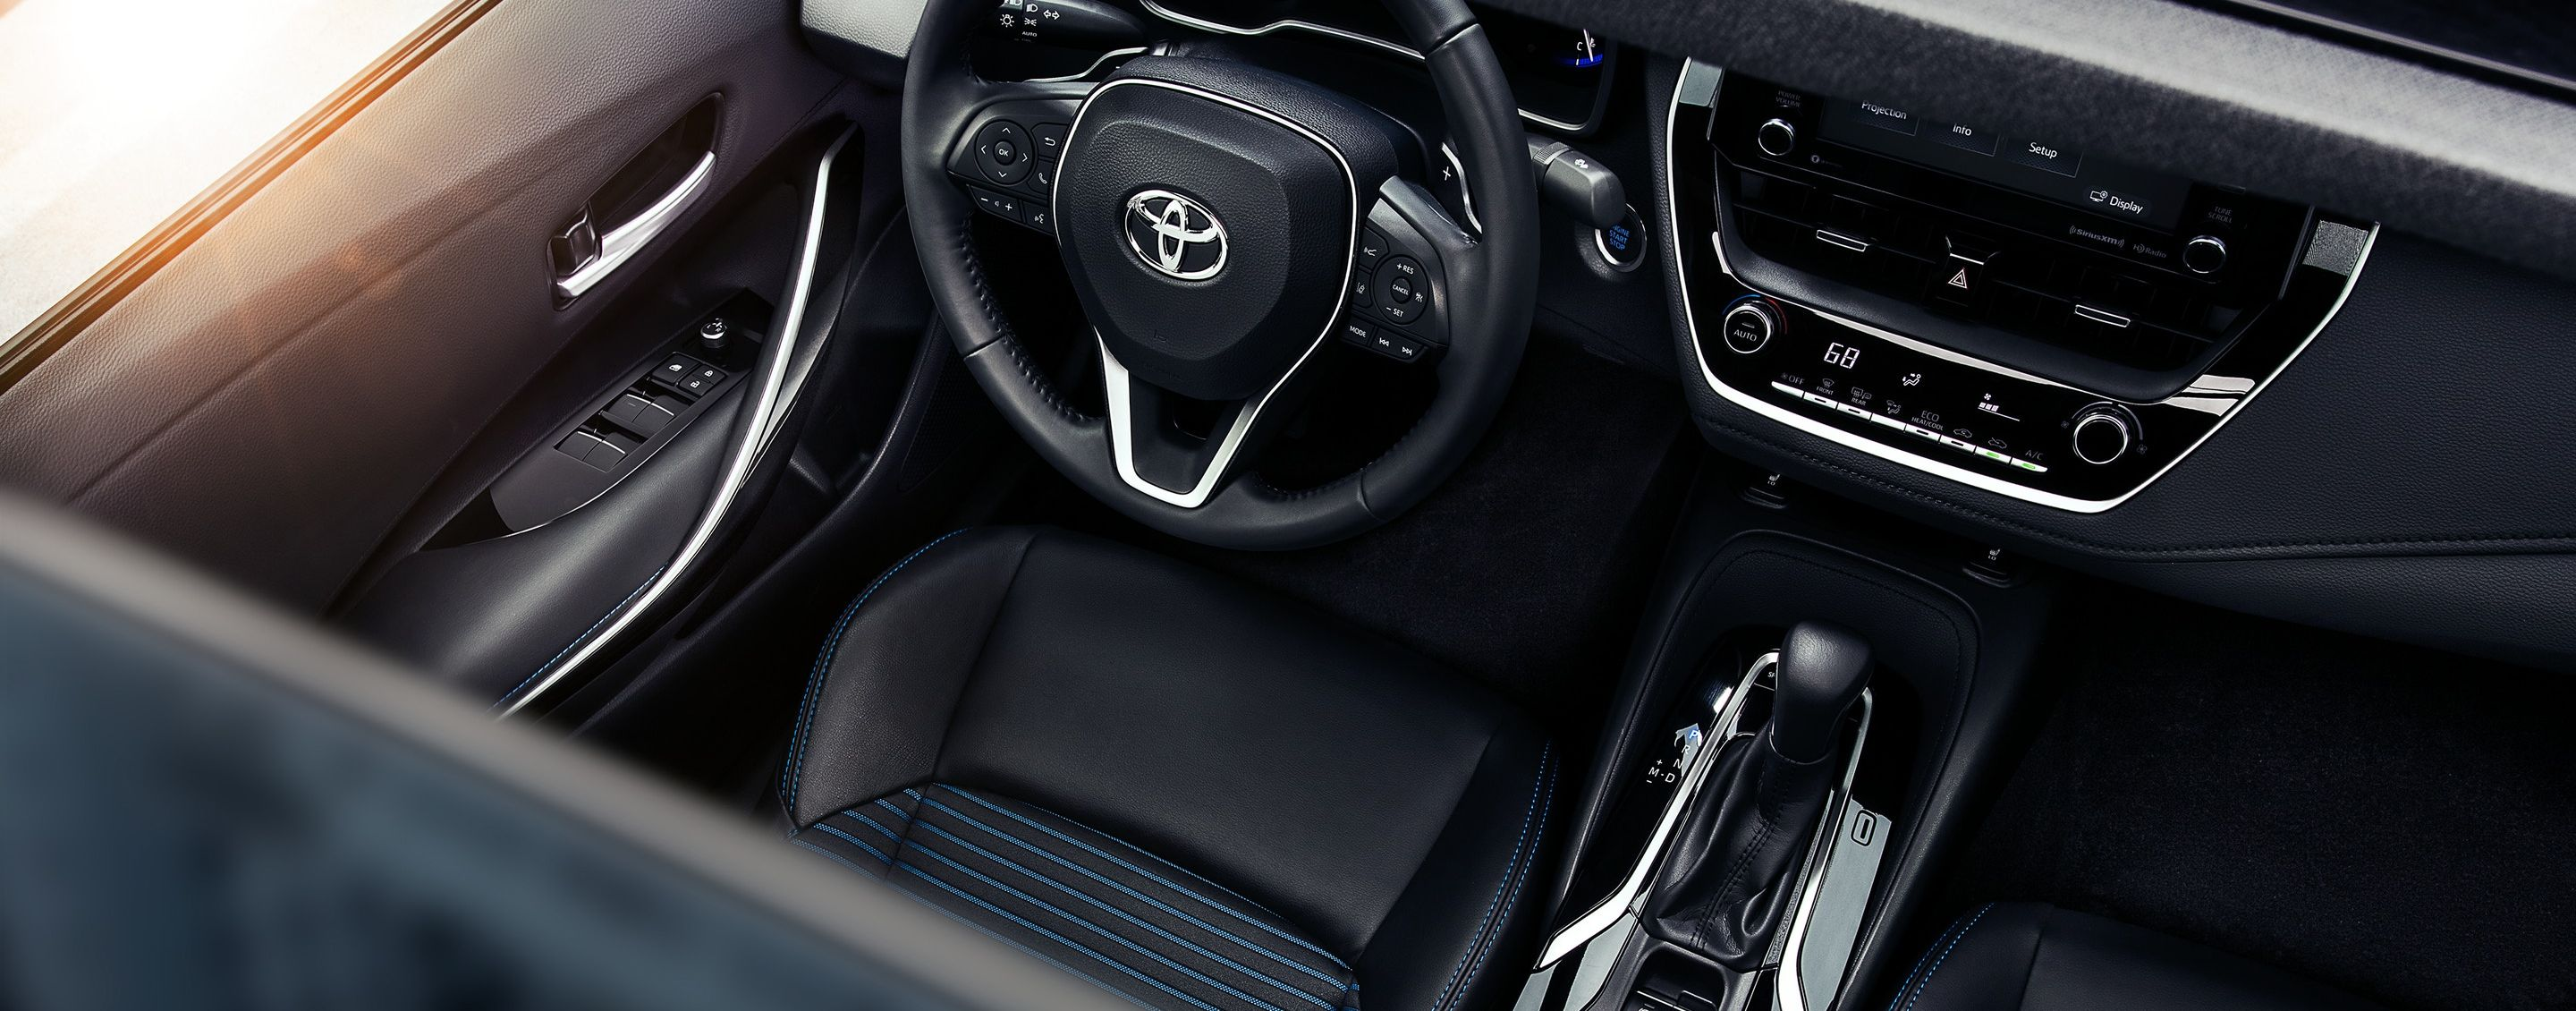 Cozy and Secure Cabin of the 2020 Toyota Corolla